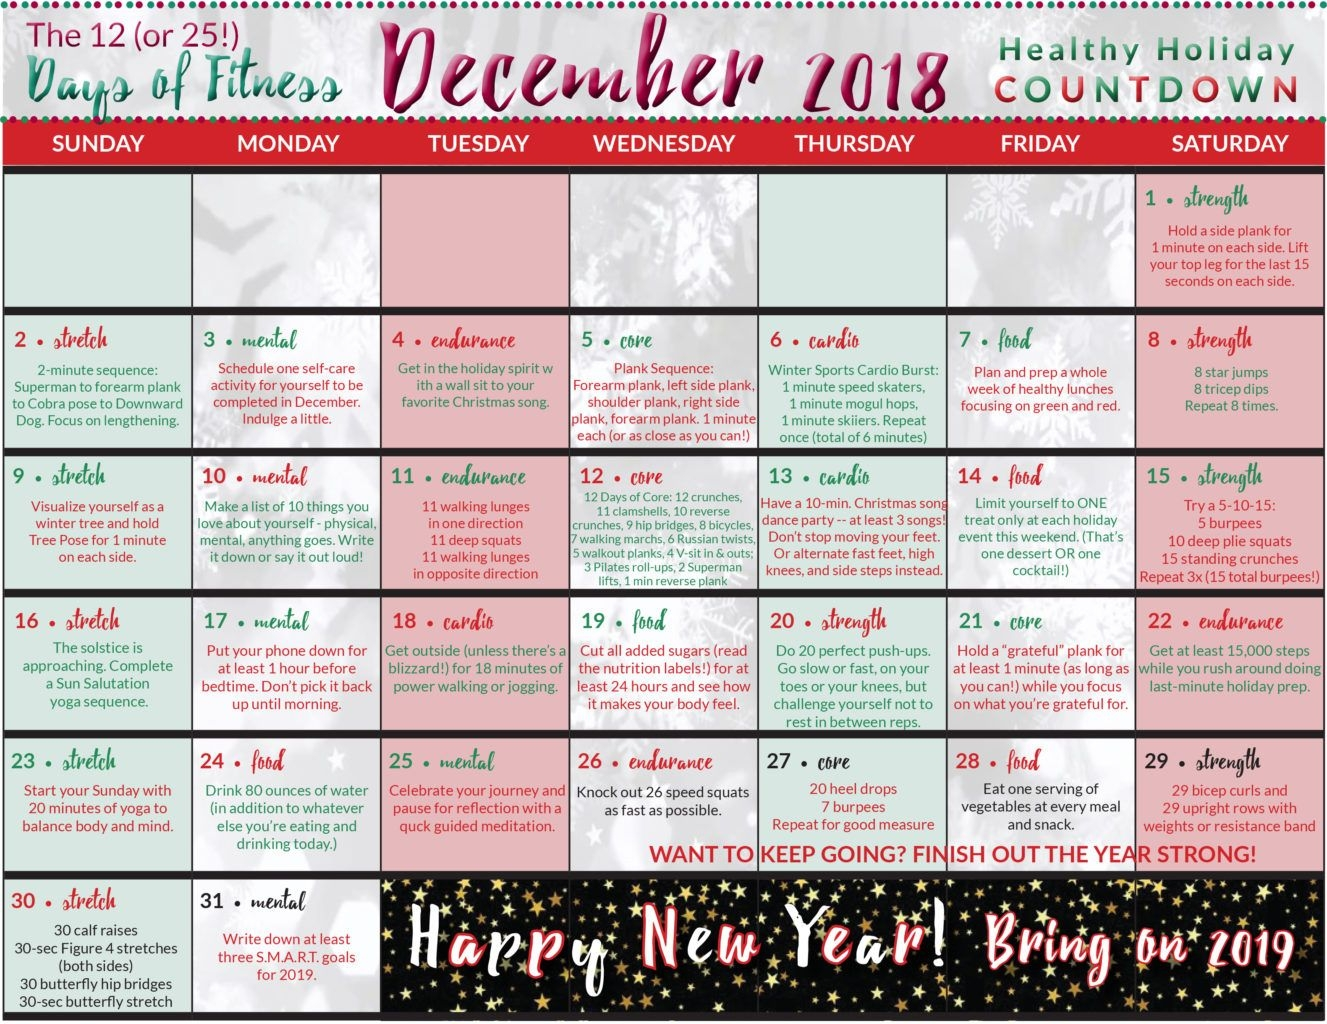 Healthy Holiday Countdown Calendar | #neverdonewithfun